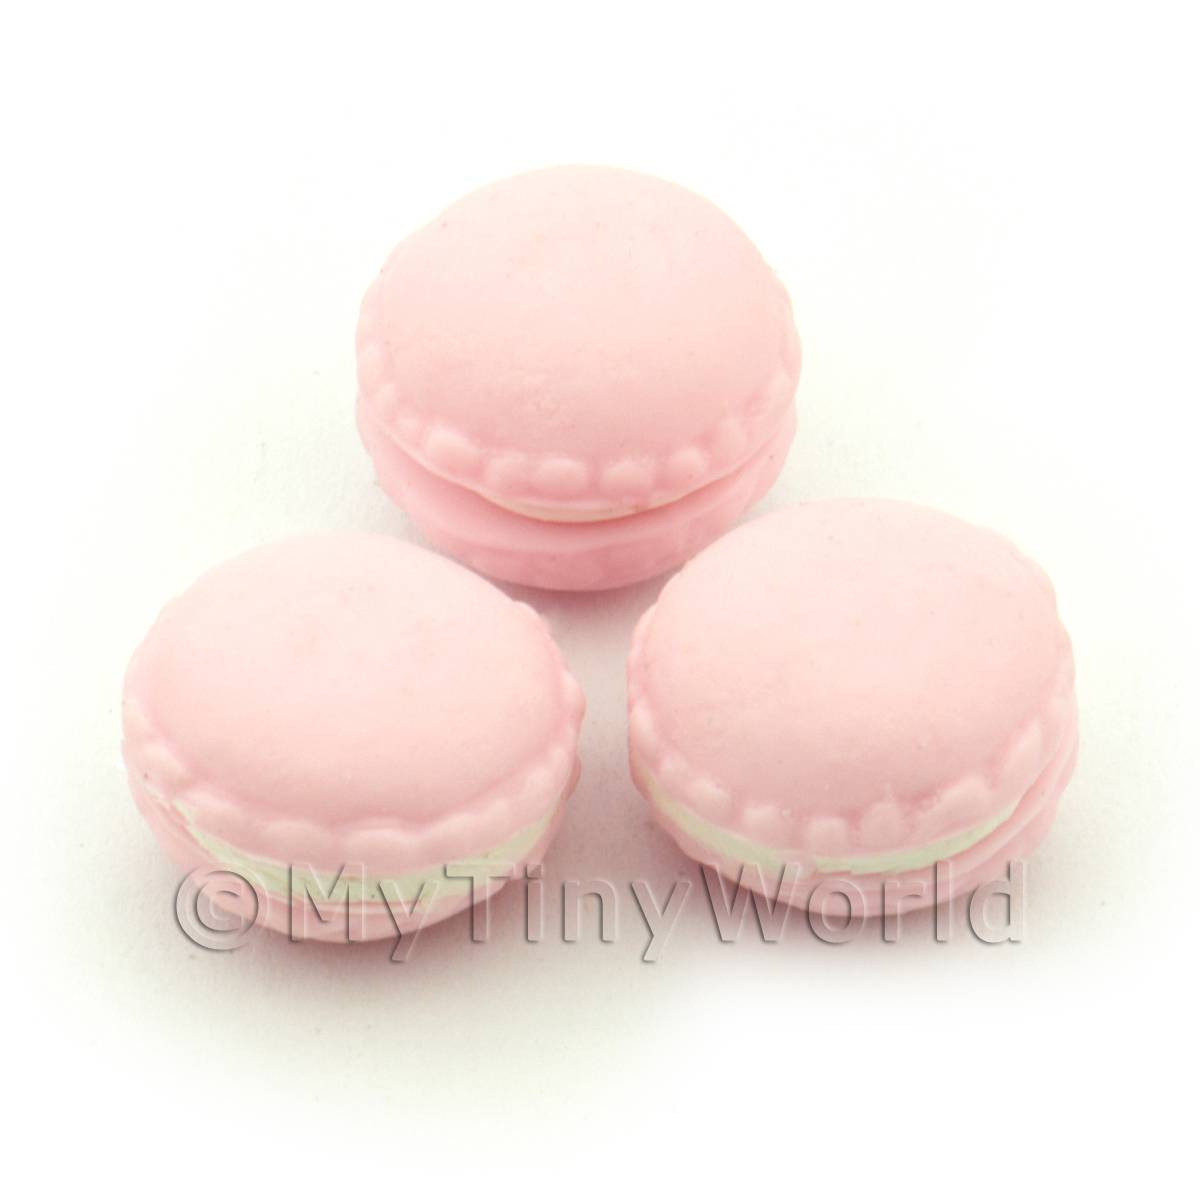 Handmade Light Pink Macaroon For Jewellery And Charms